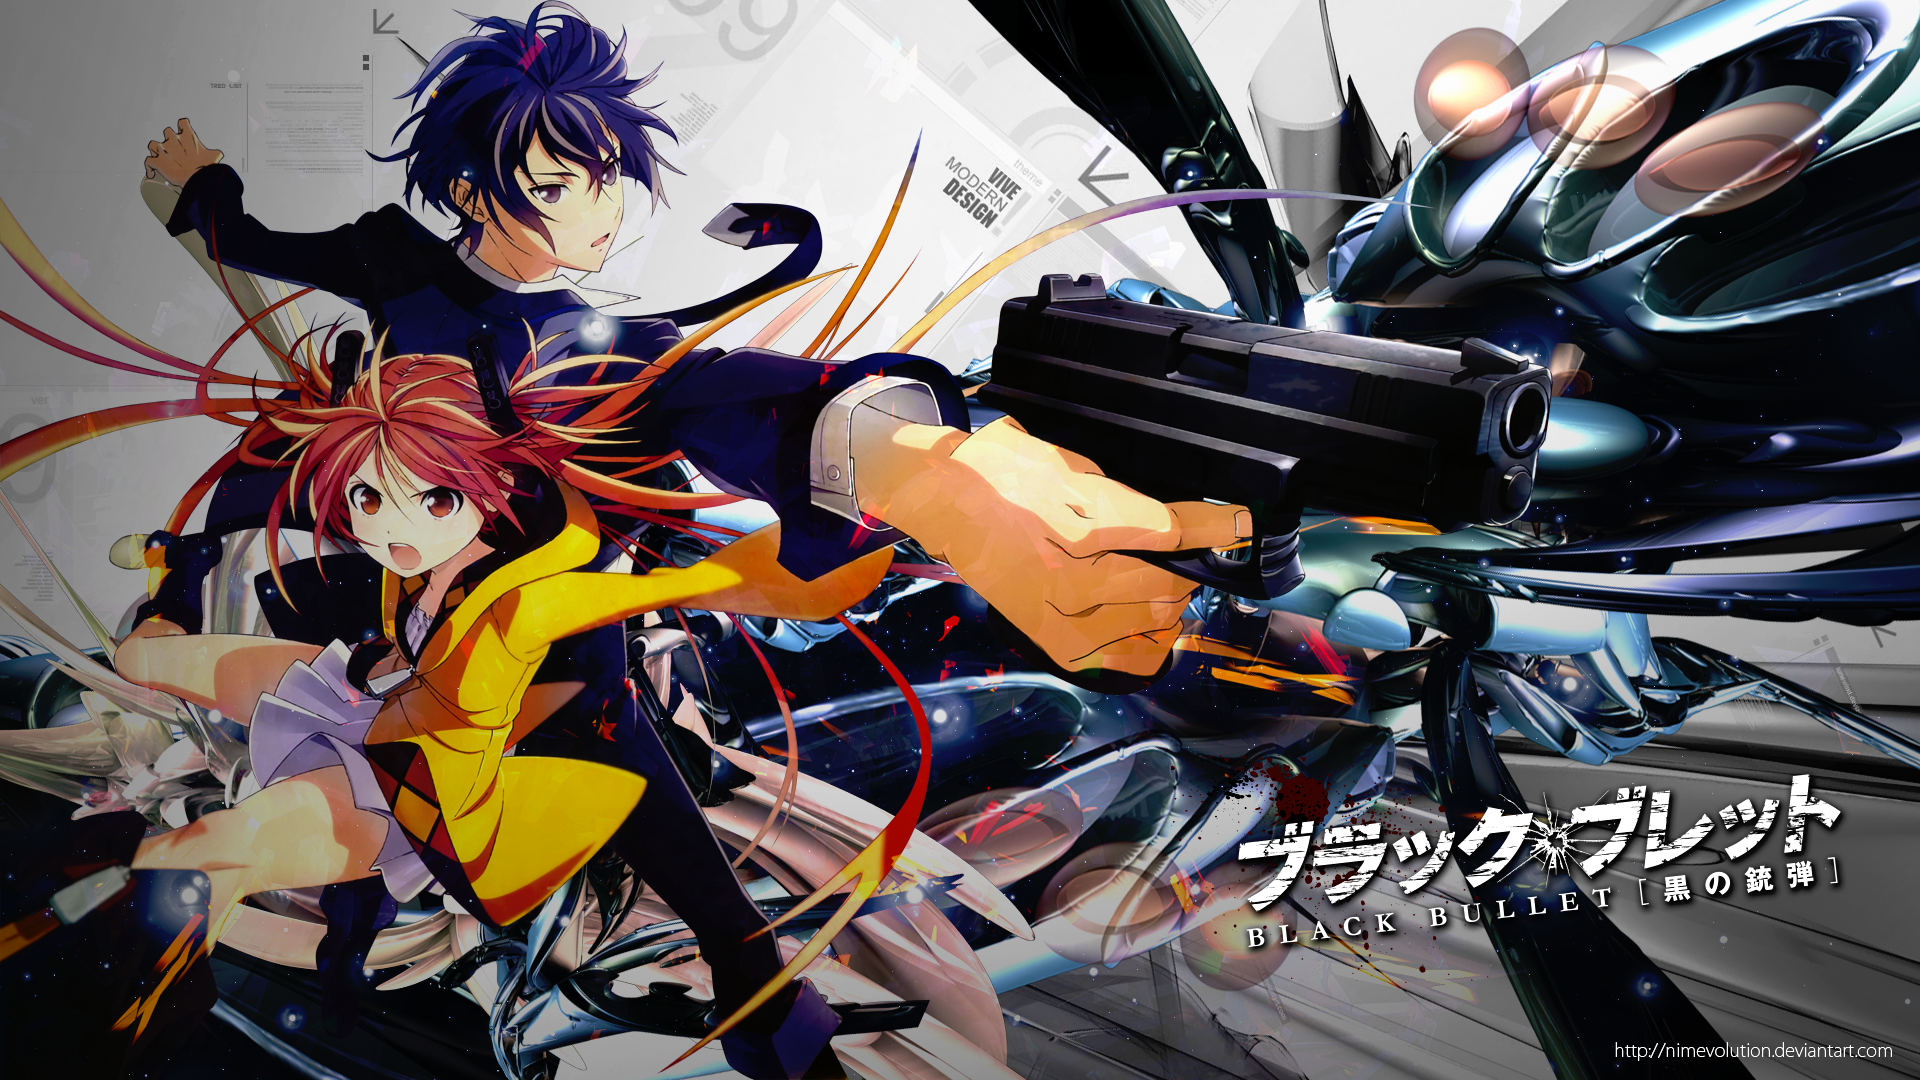 black bullet full hd fond d233cran and arri232replan